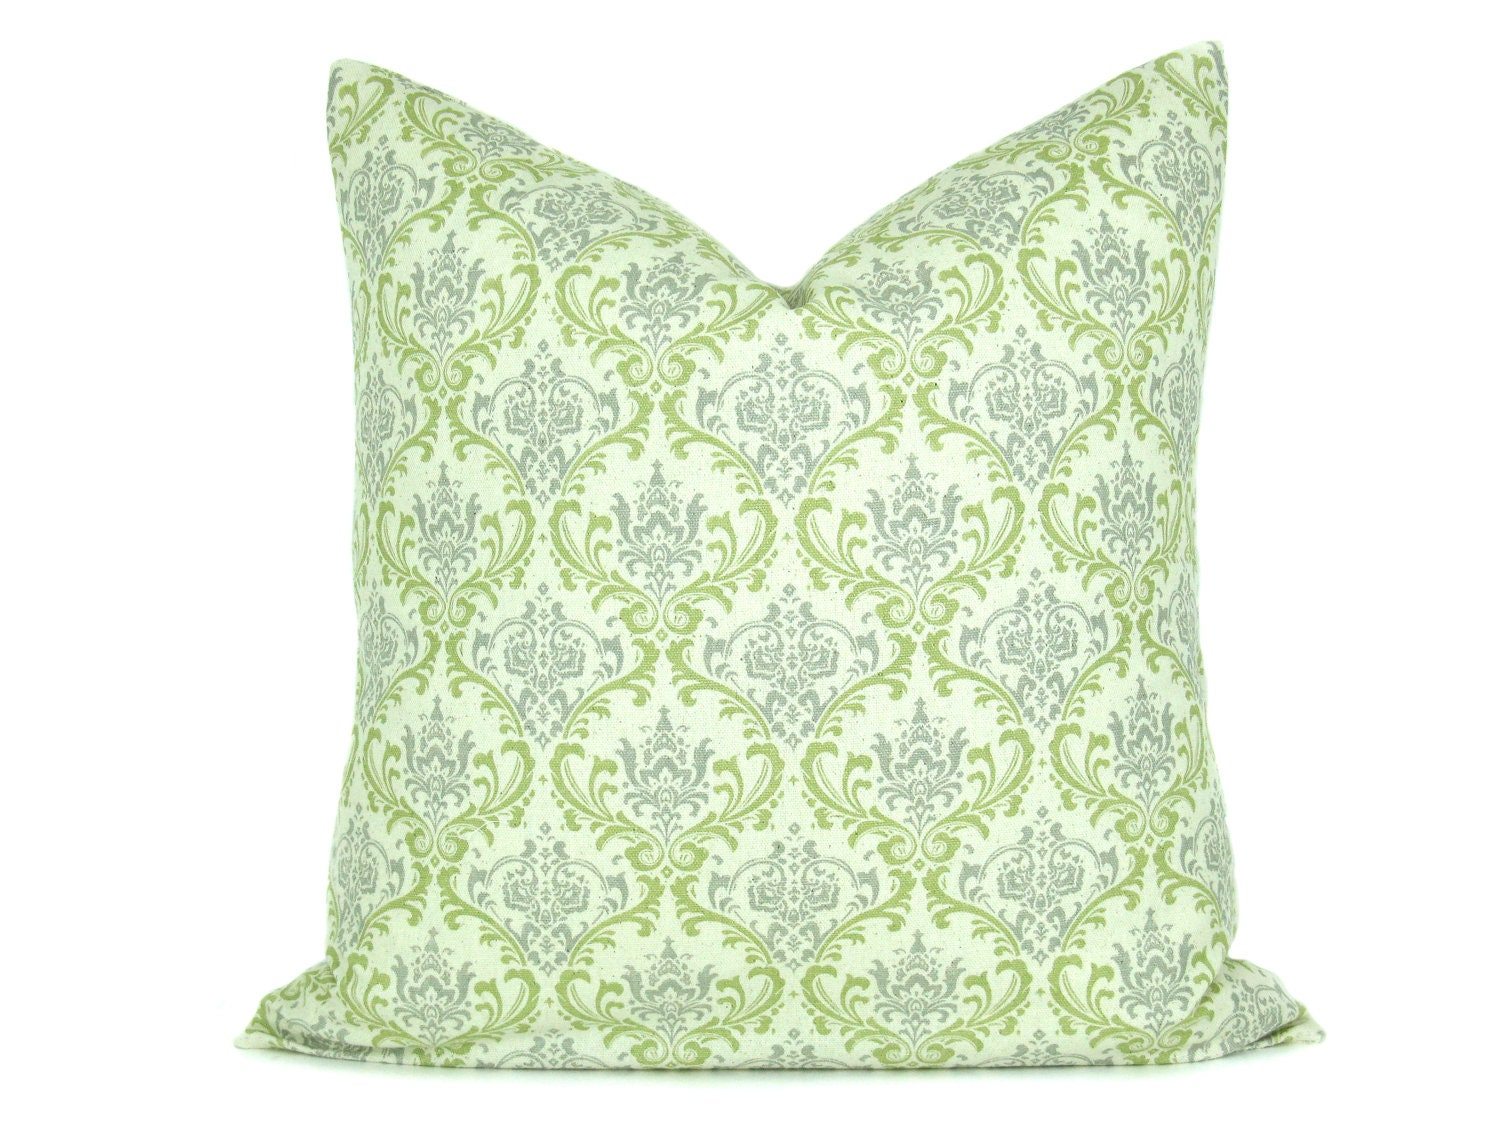 Decorative Cream Pillows : Decorative Throw Pillow Gray Green Cream Damask ONE by EastAndNest